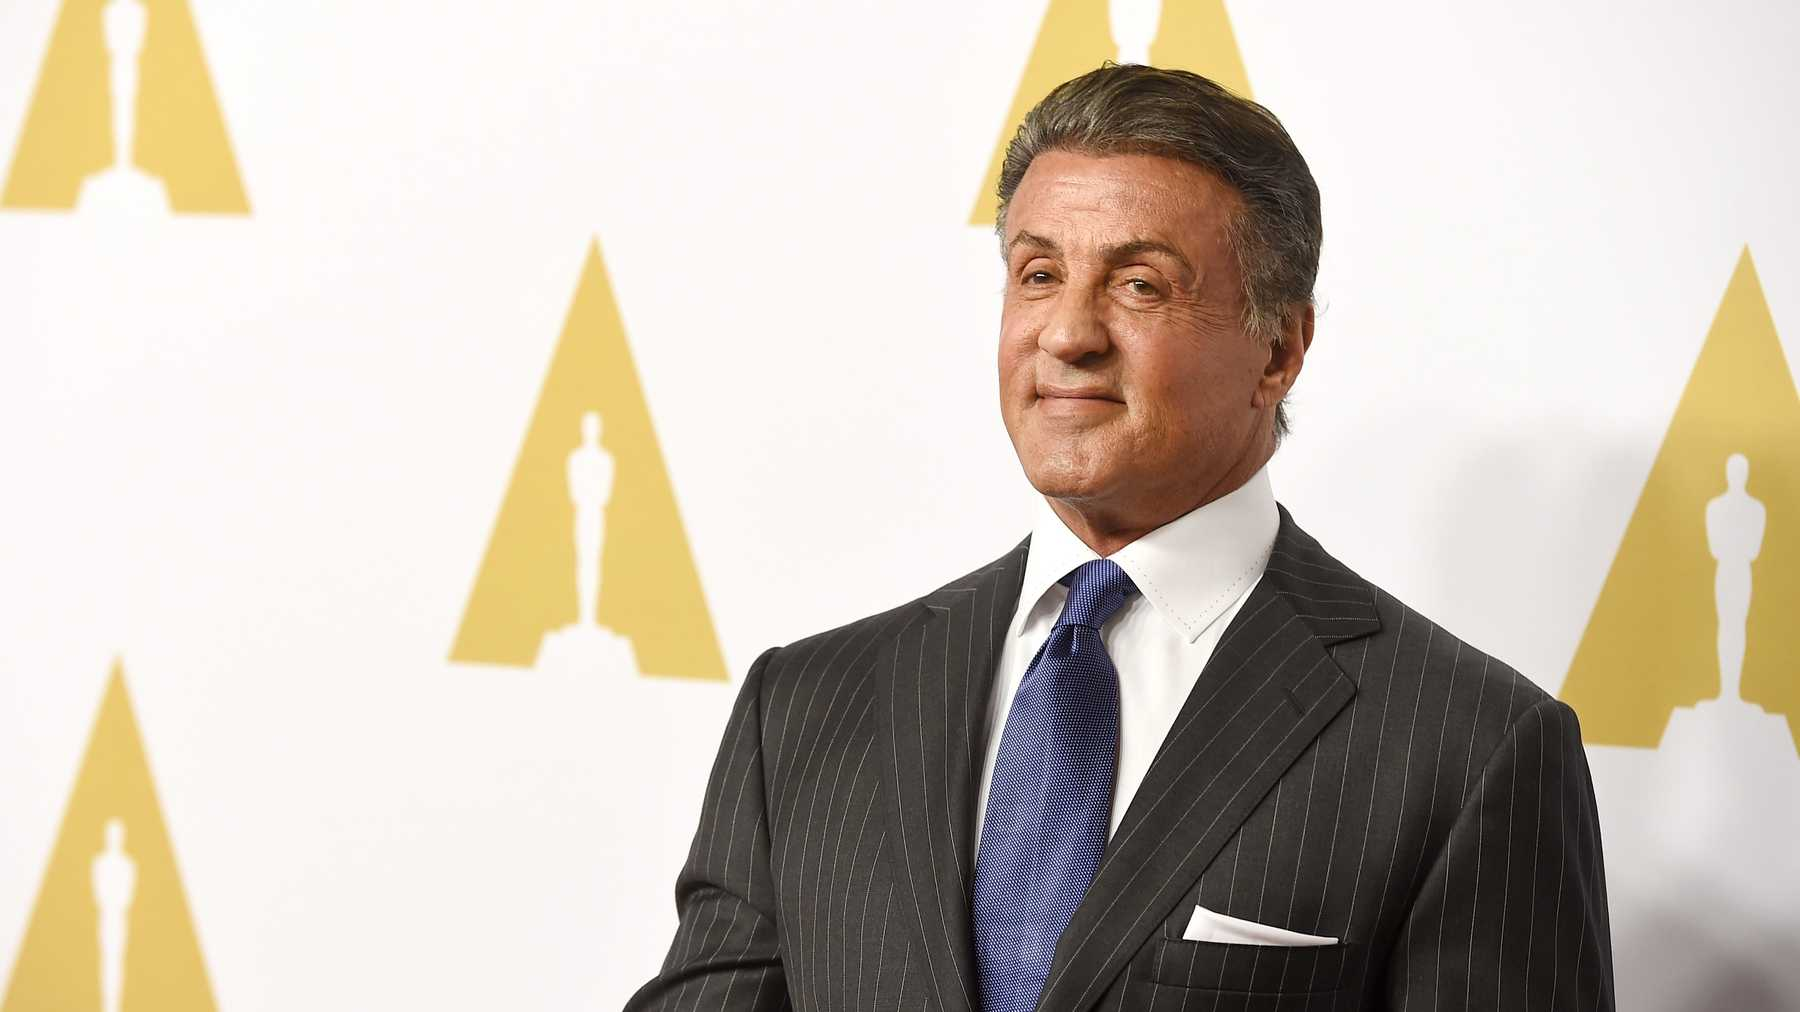 Sylvester Stallone Planning A Cobra Spin-Off TV Series